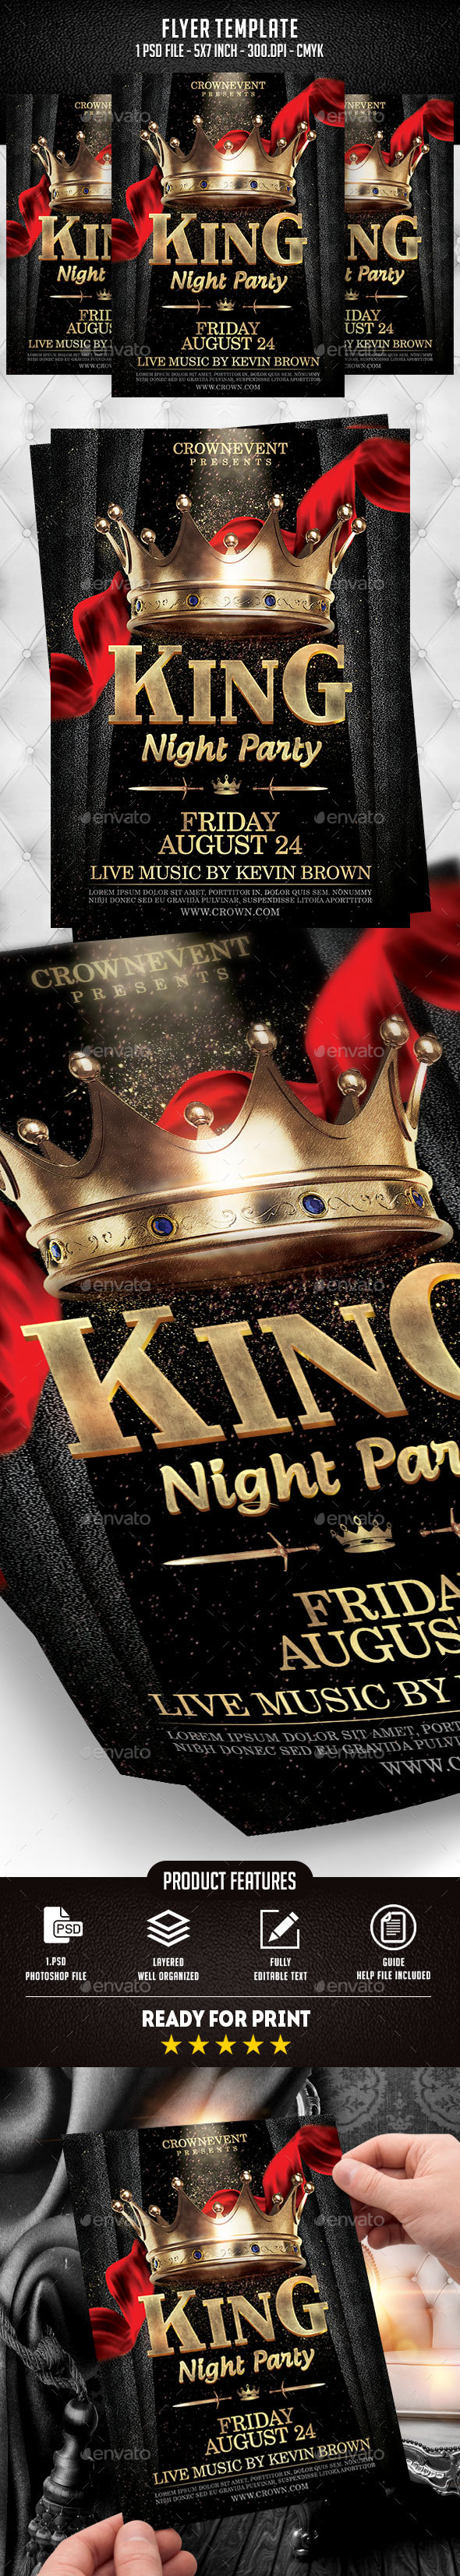 King Night Party Flyer Template - Clubs & Parties Events